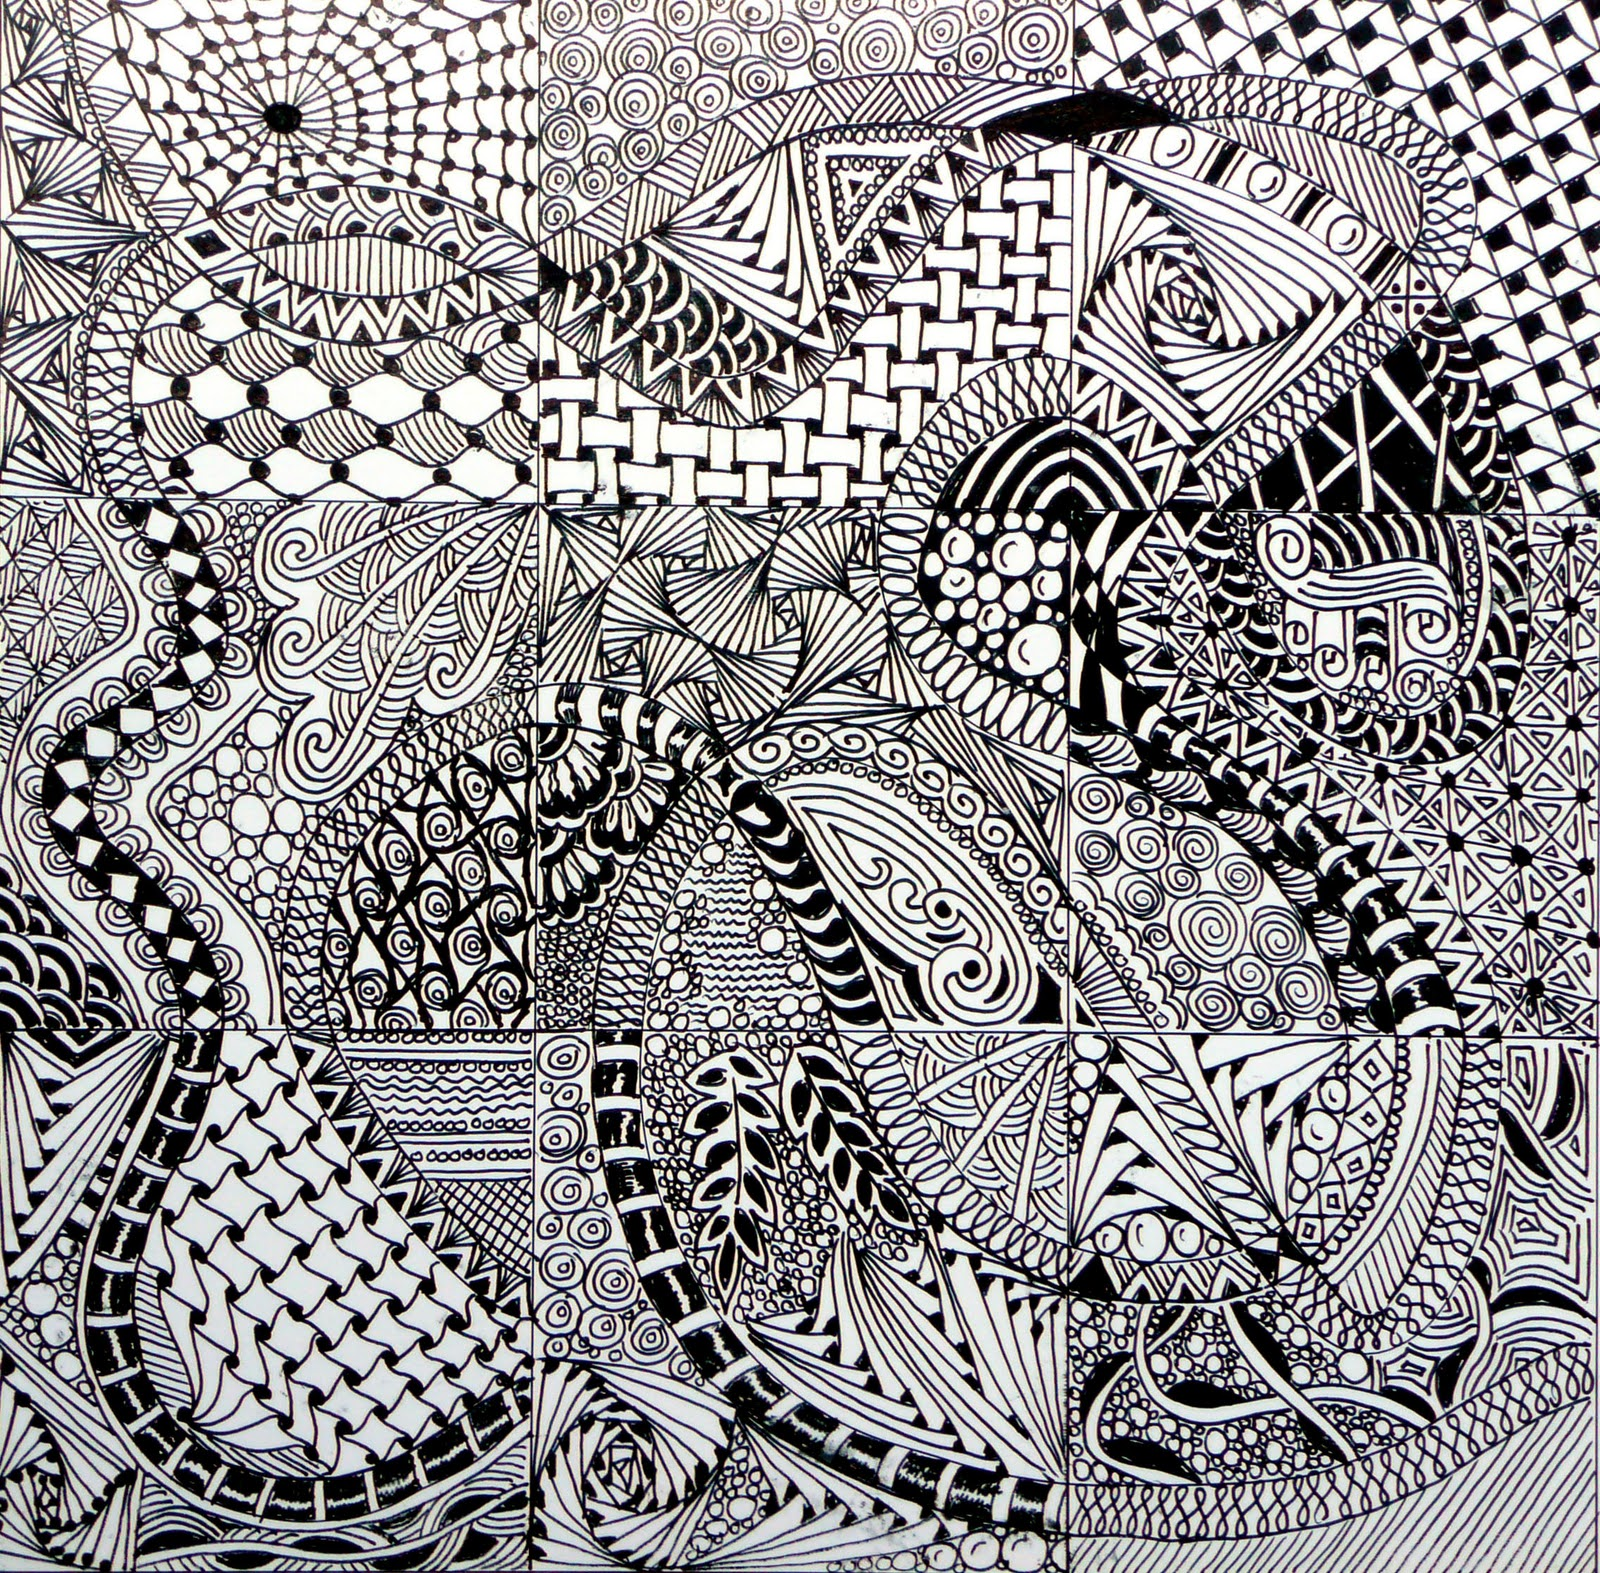 The Lenkerville Art Room Monday Motivations Zentangles